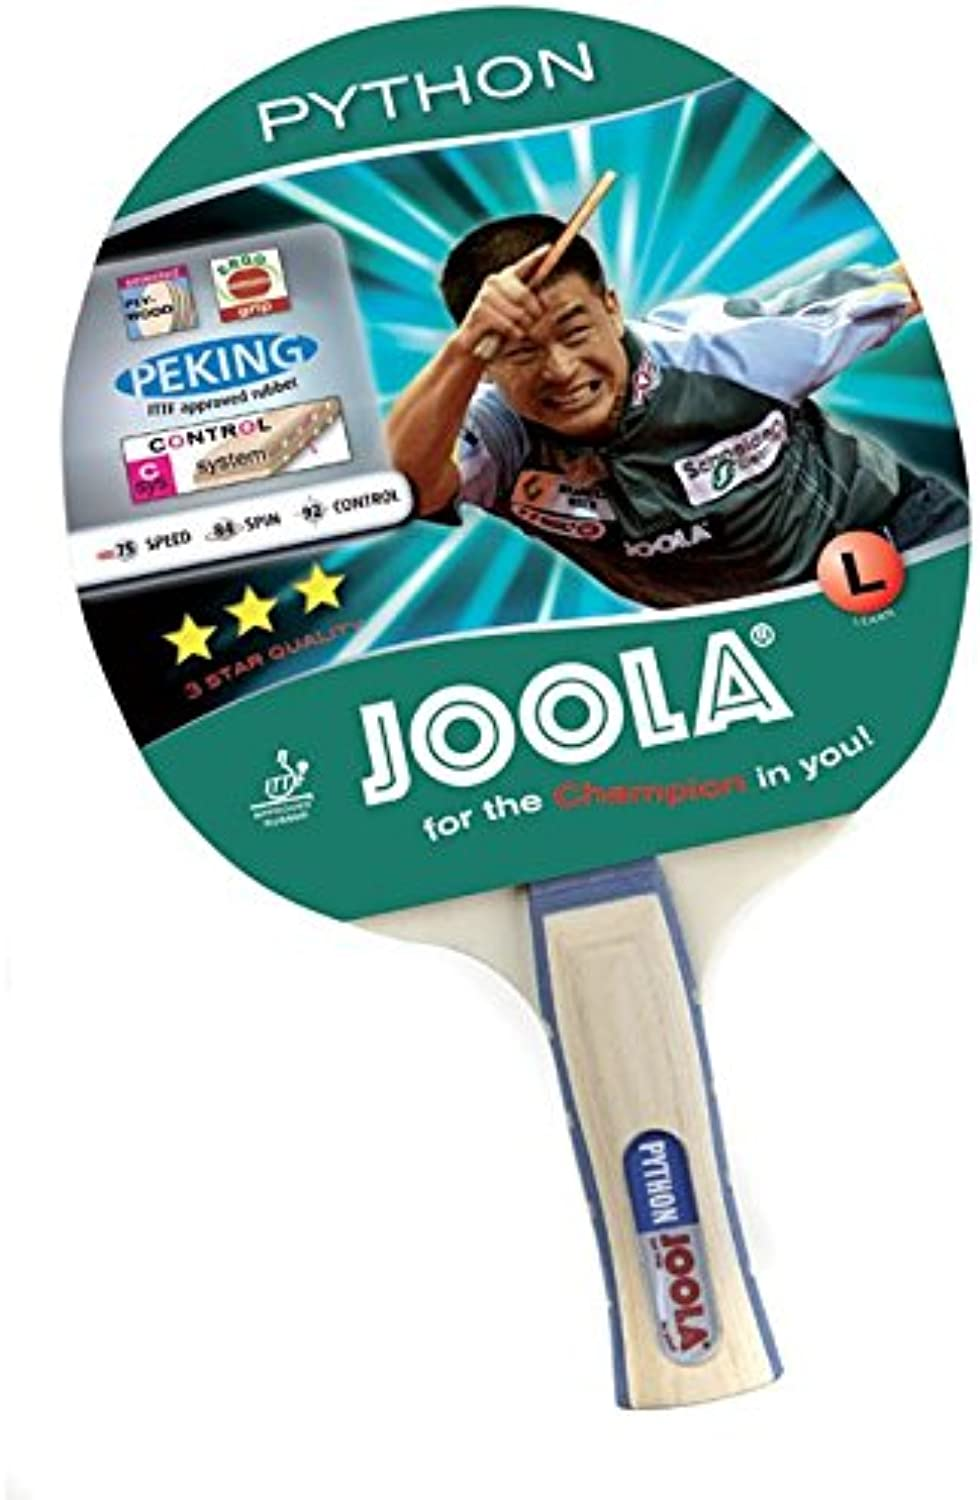 JOOLA 53031 Python Recreational Table Tennis Racket